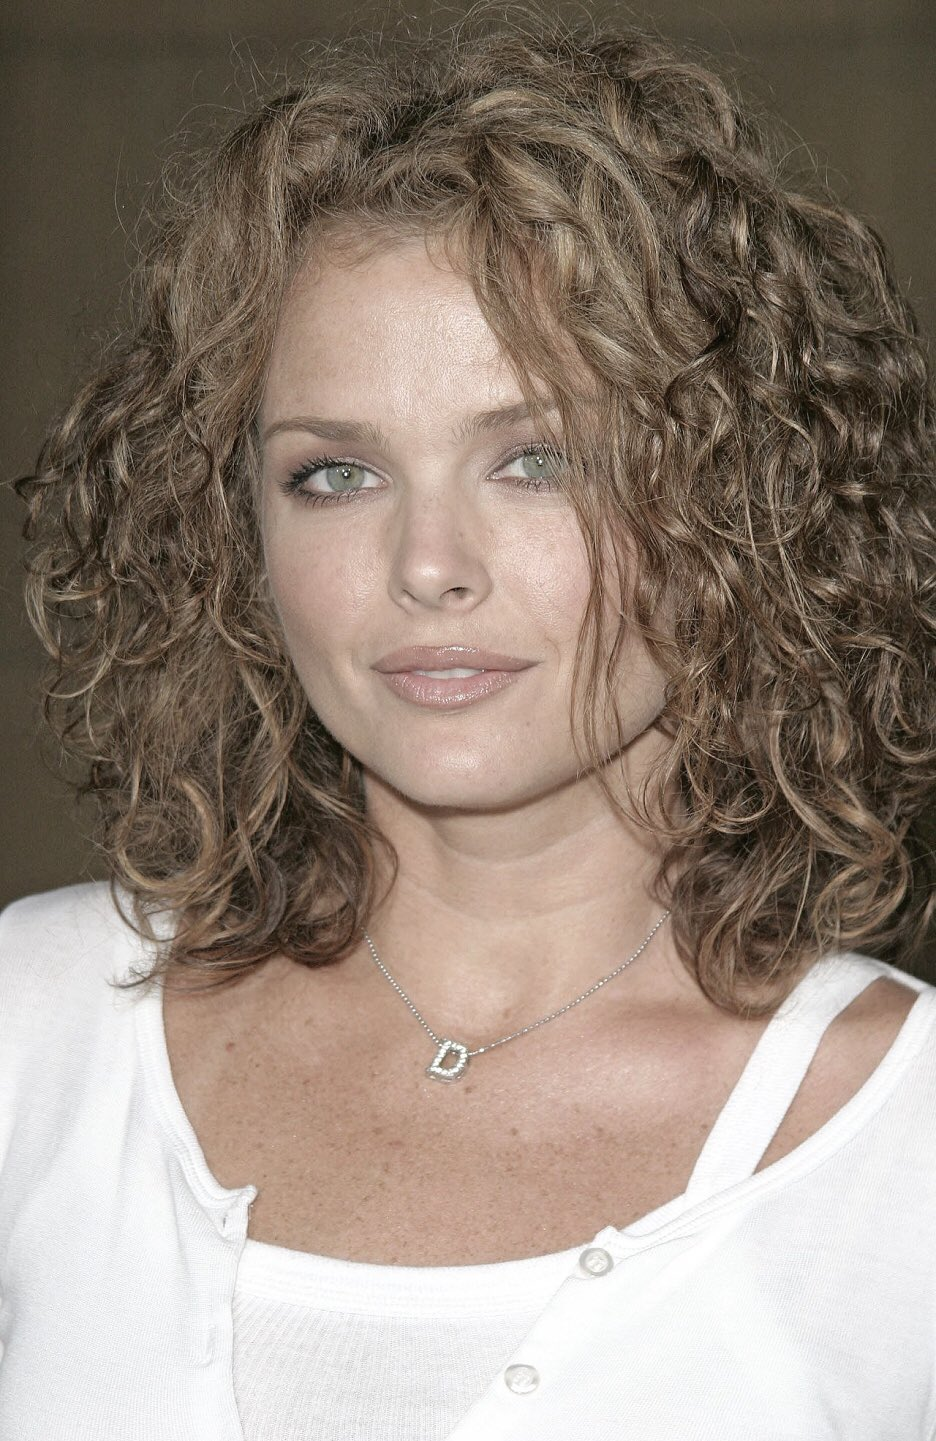 We wish a very happy birthday to the talented and gorgeous Dina Meyer! ¡Feliz cumpleaños